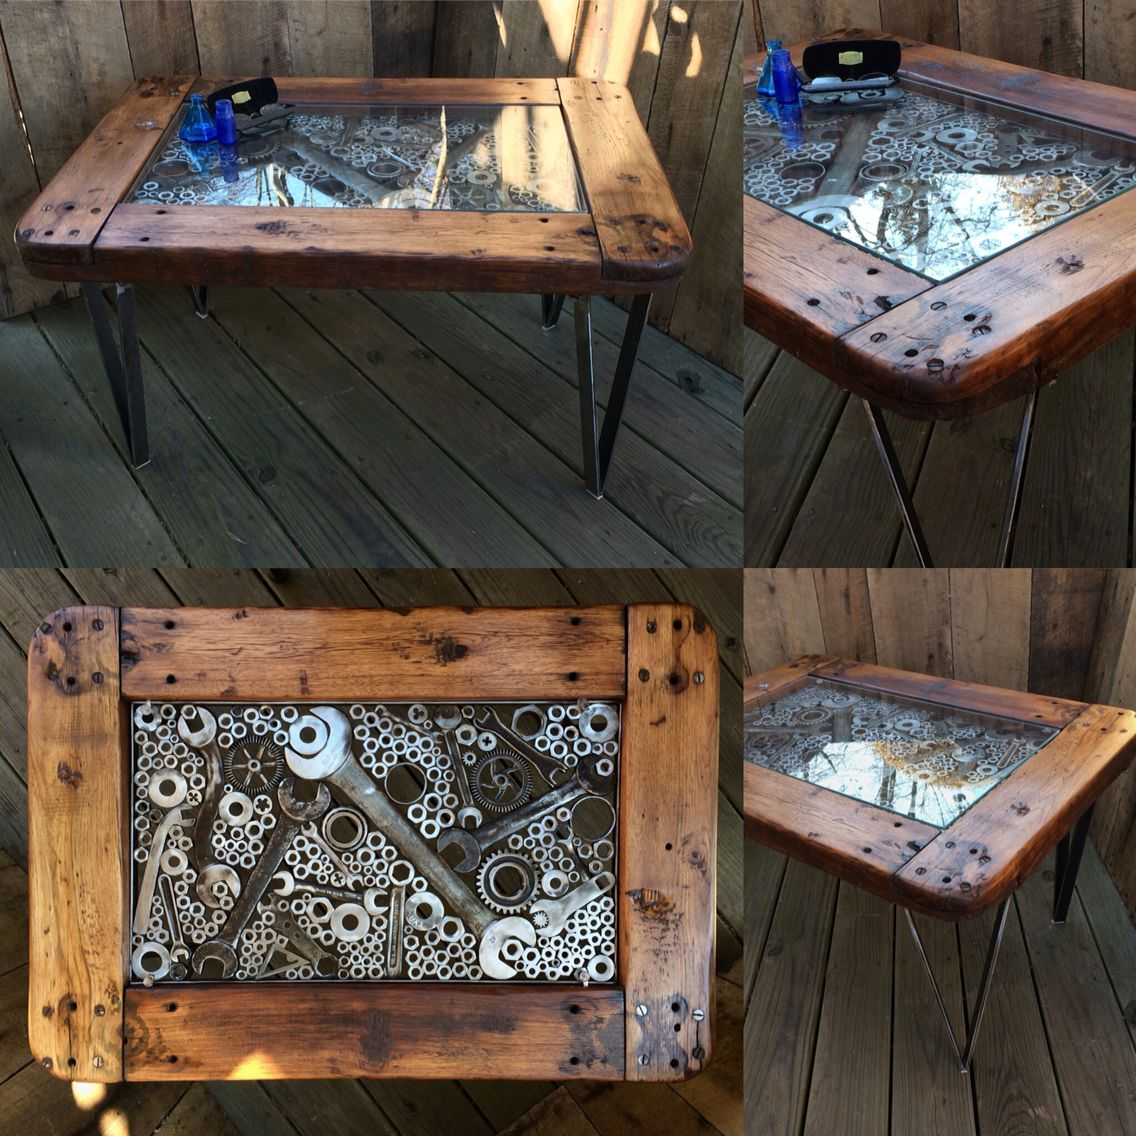 Steampunk Couchtisch Metal And Wood Coffee Table Various Wrenches Nuts Washers